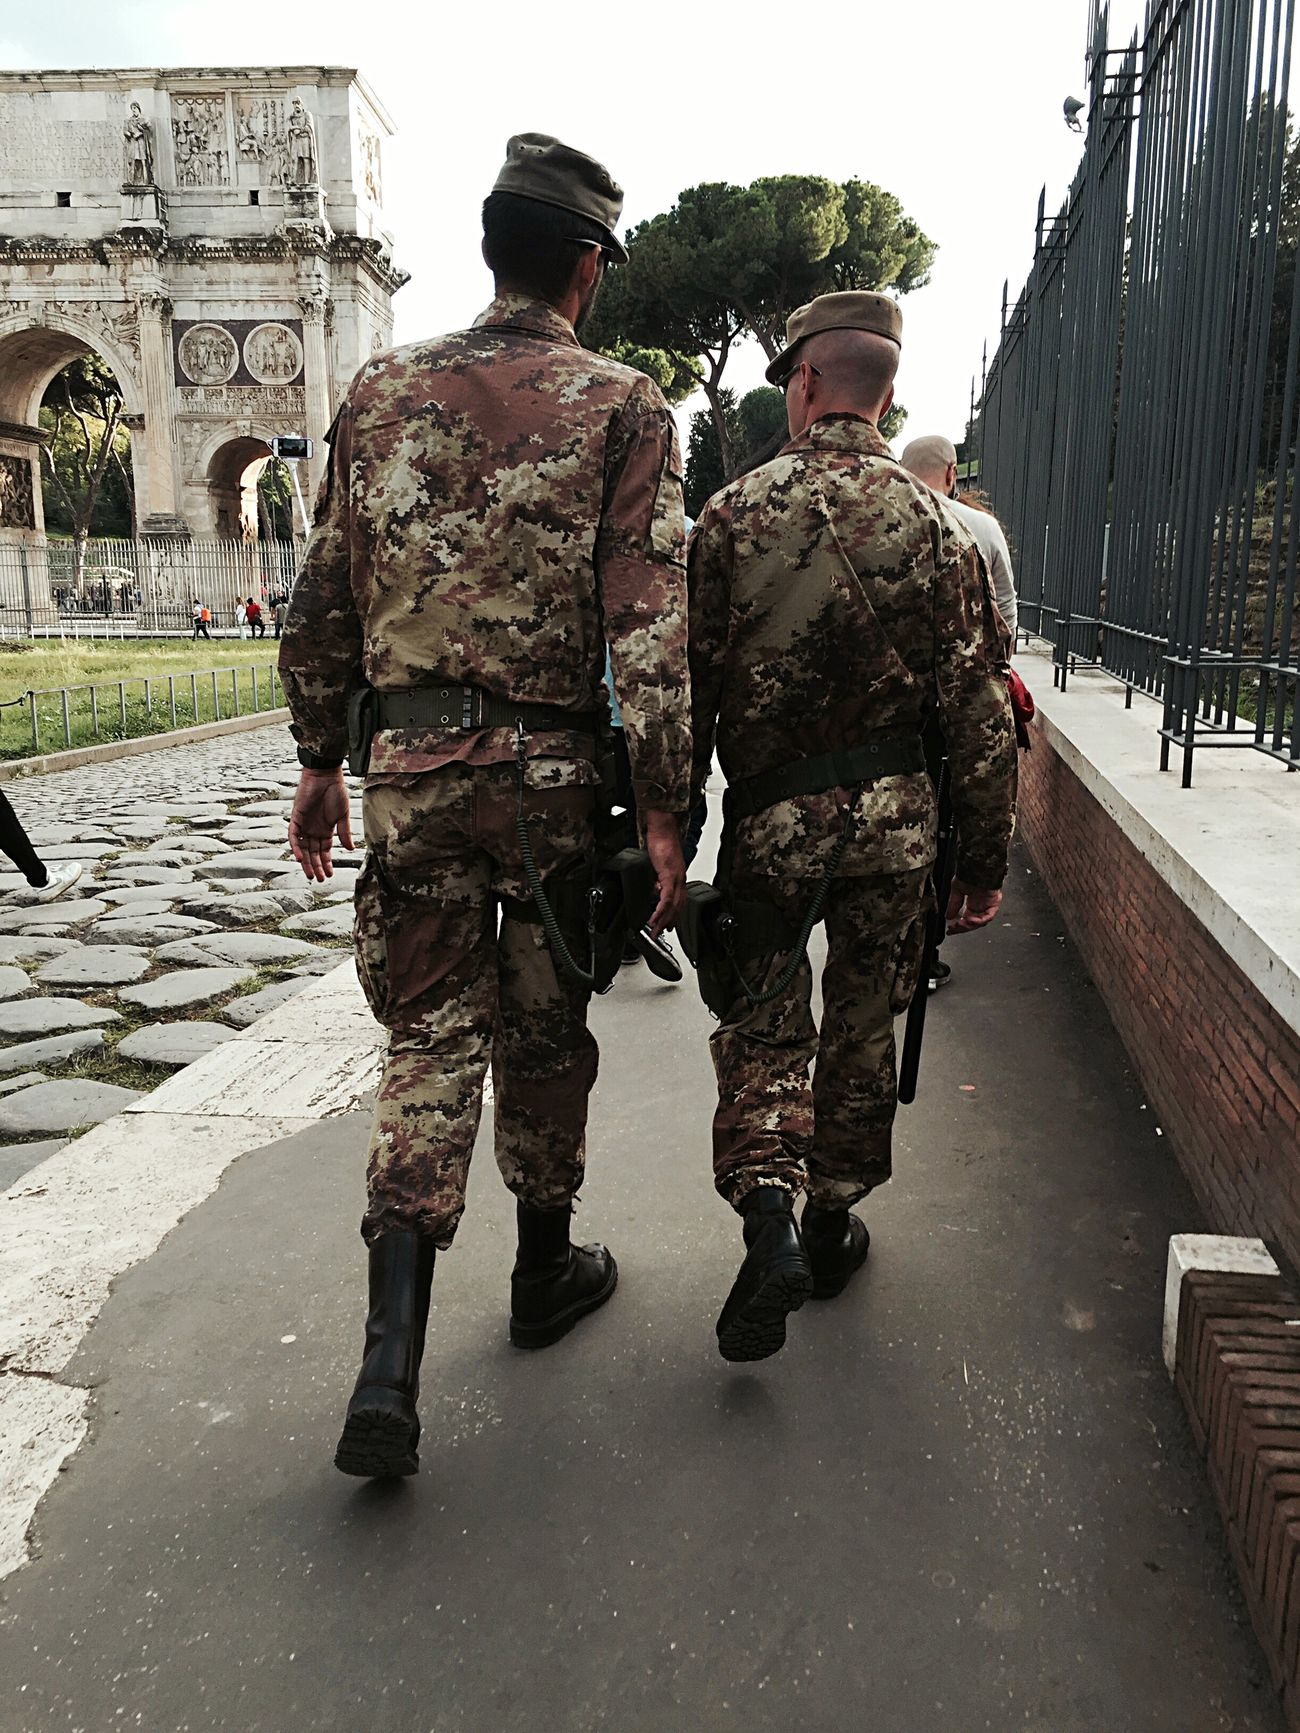 Streetphotography Military Police